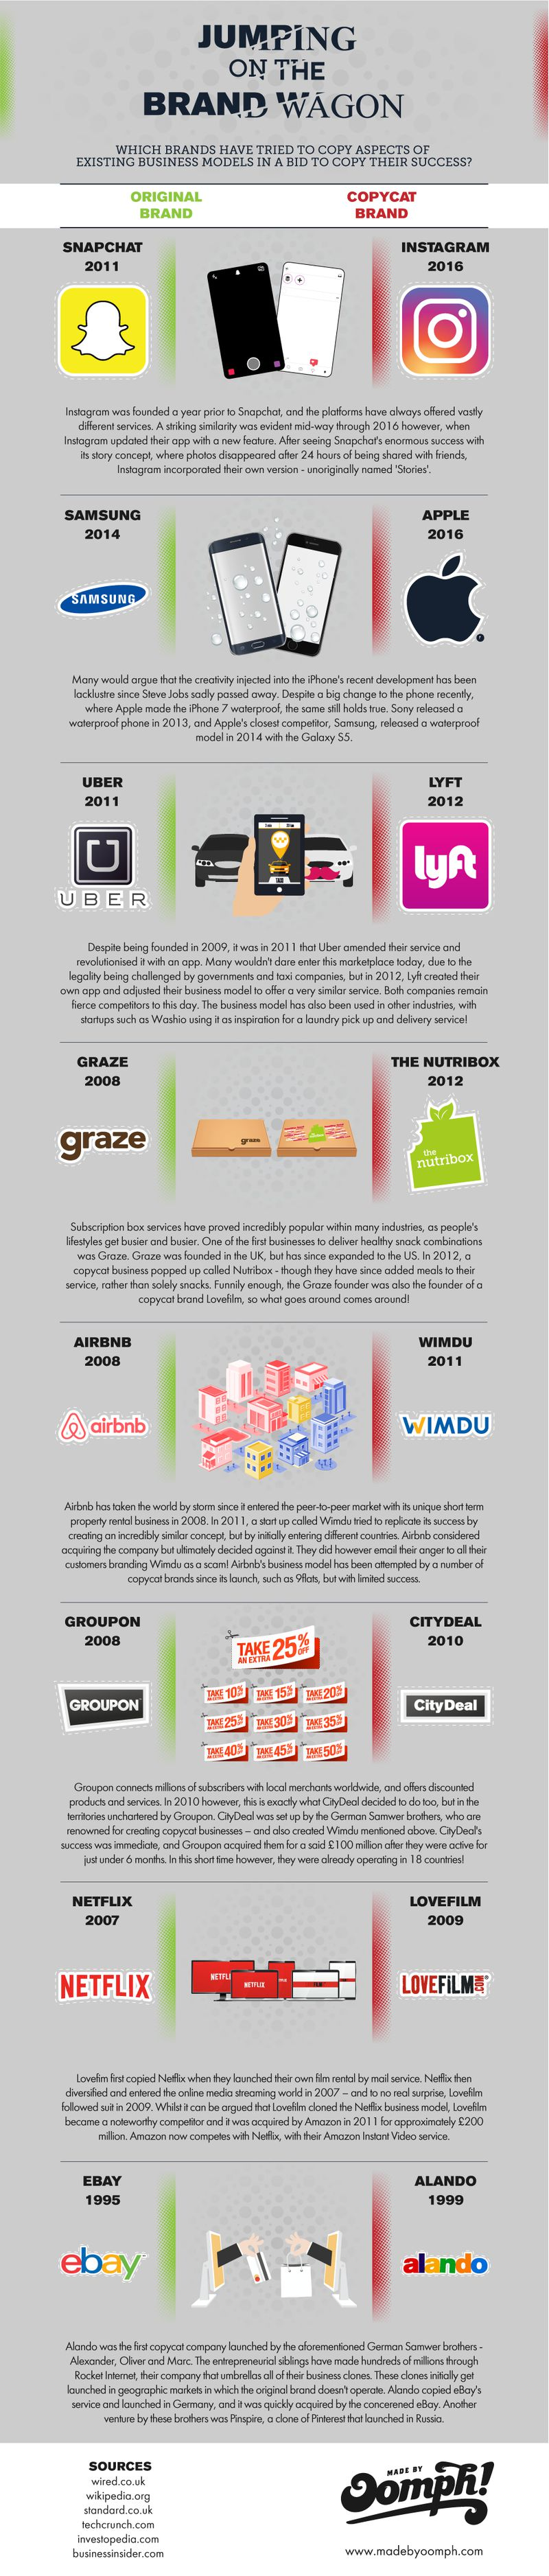 Blog infographic - jumping on brand wagon